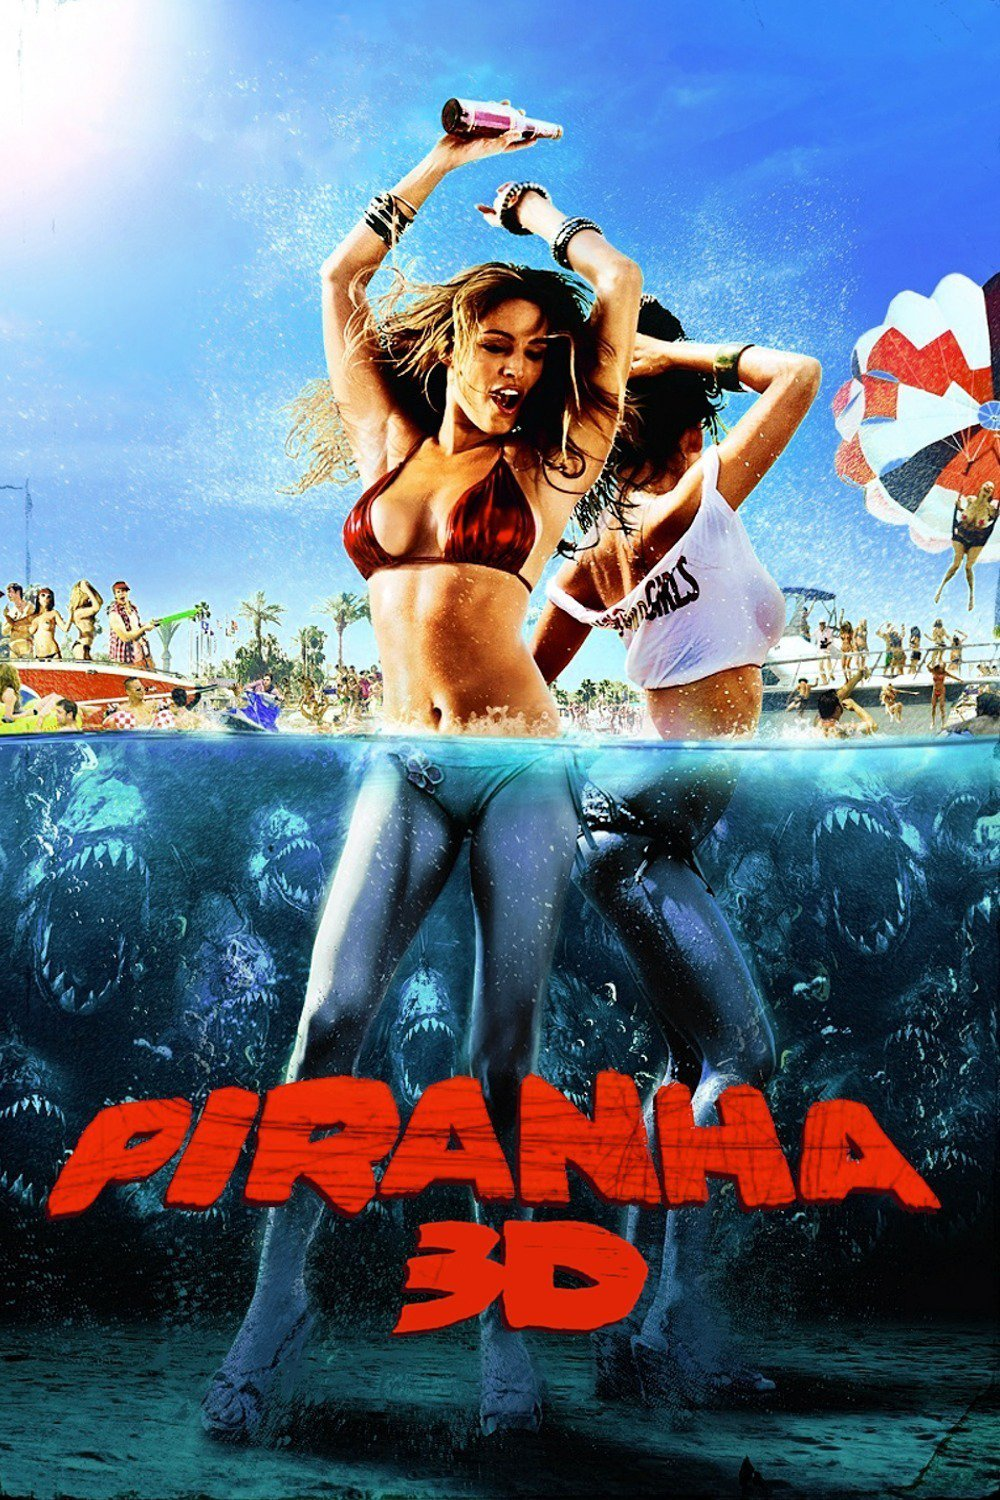 Raz's Midnight Macabre Horror Review: Piranha 3D